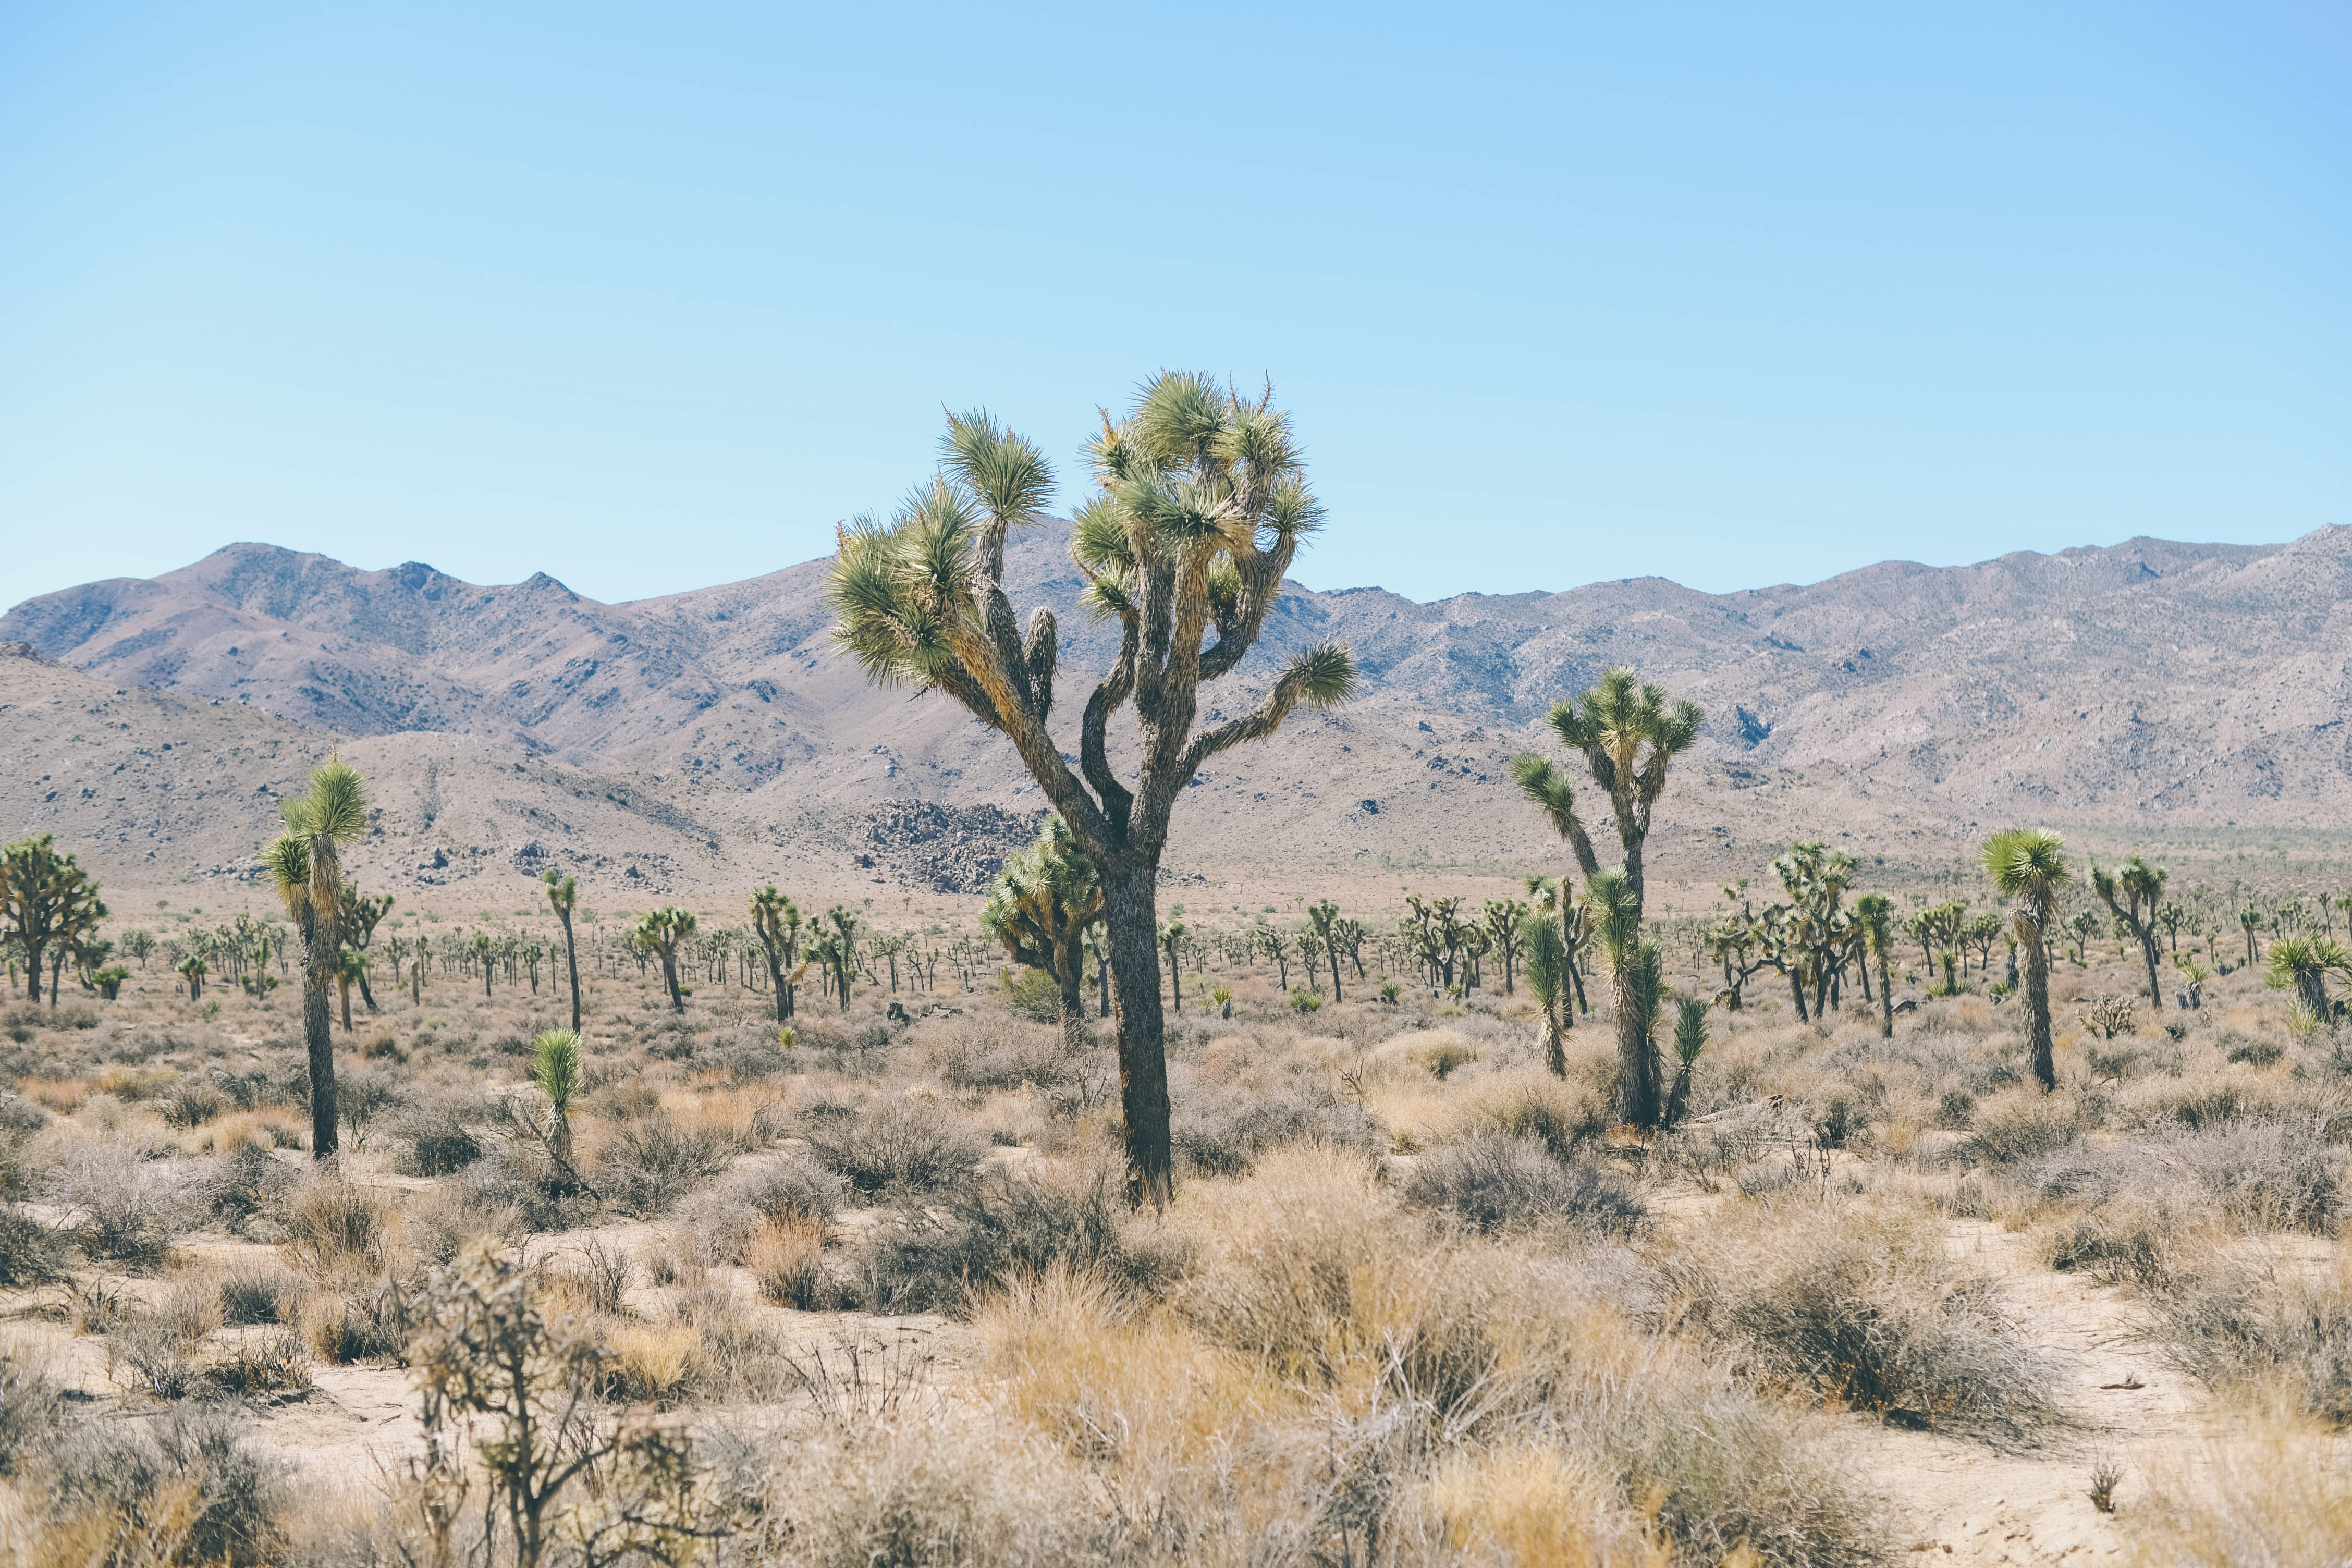 A large number of cholla cactuses among shrubs with dust-covered mountains on the horizon